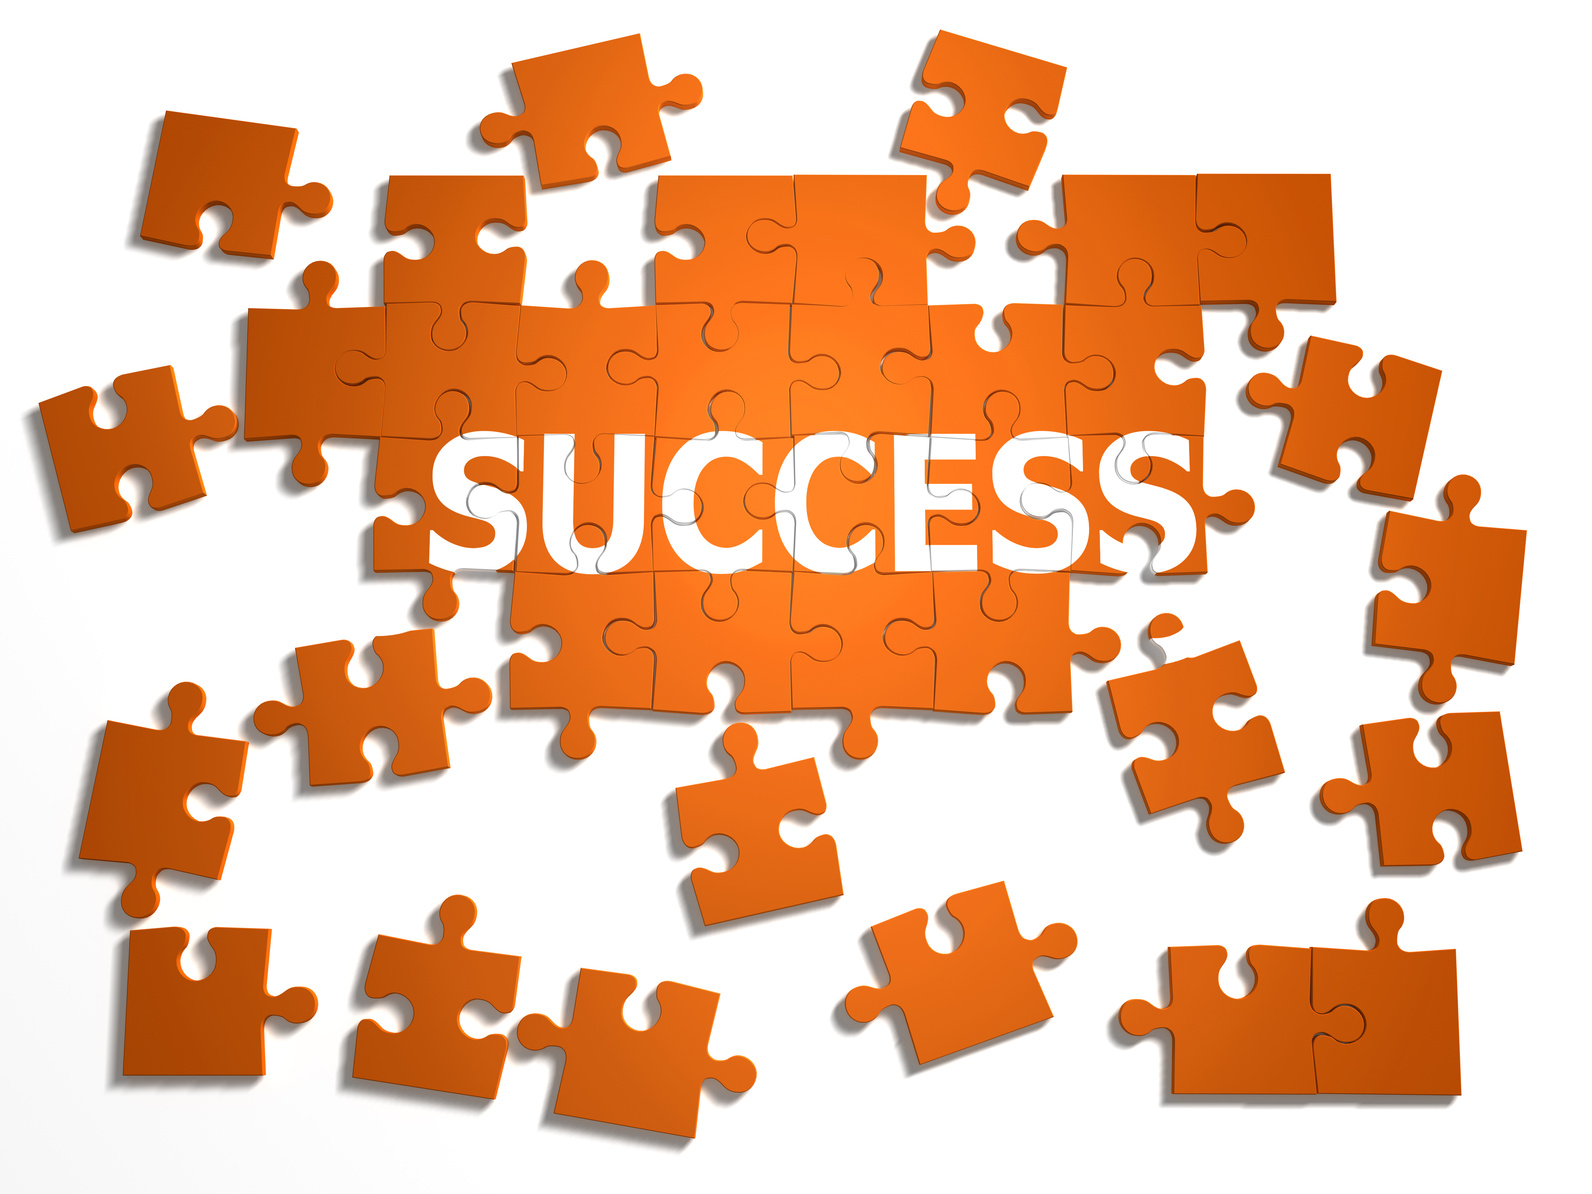 3d Success is a puzzle